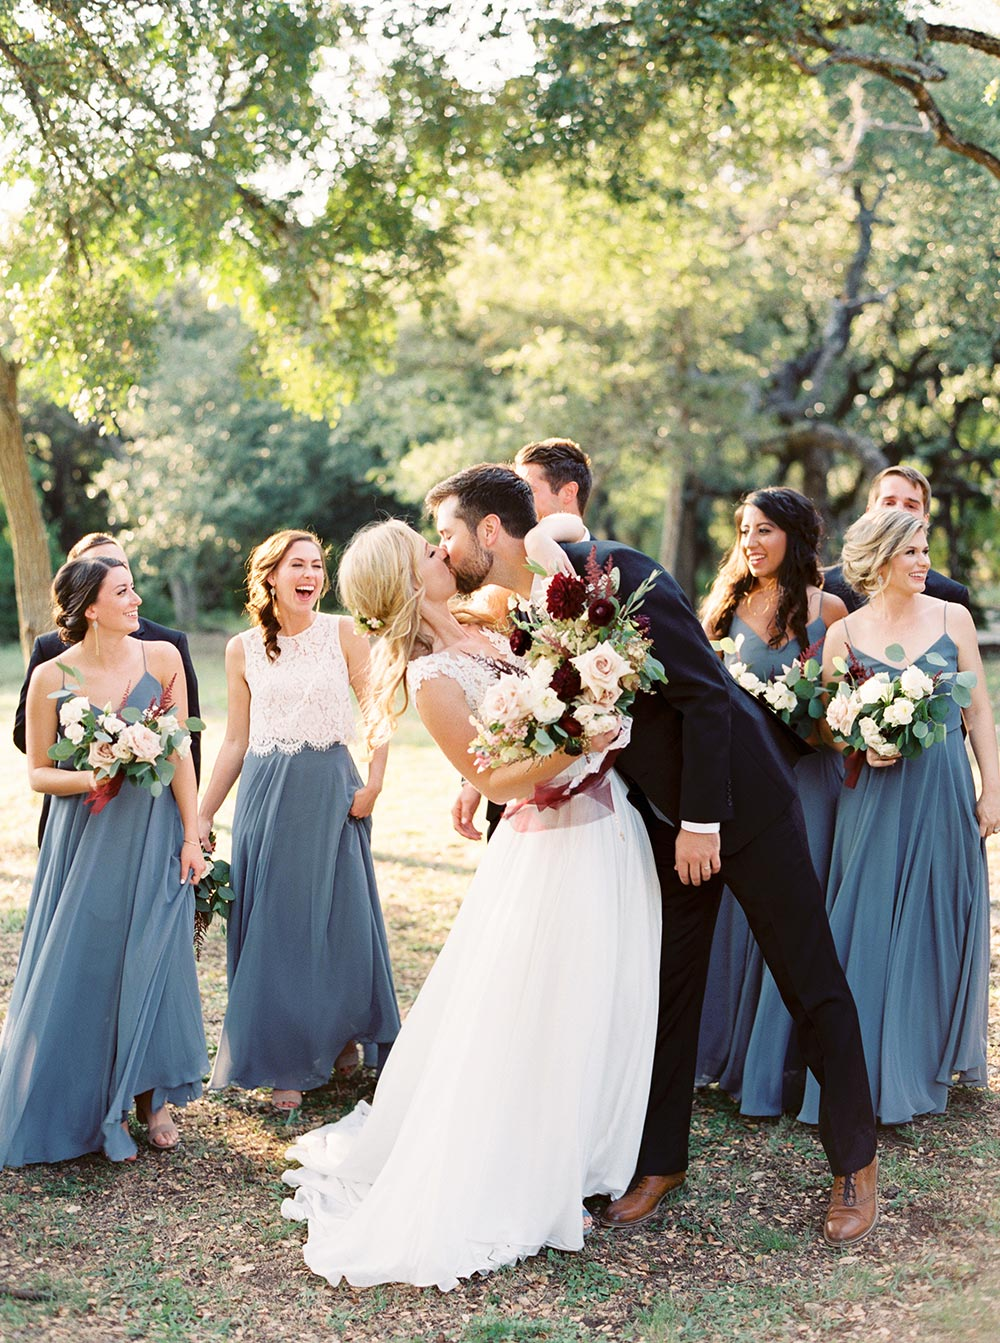 outdoor rustic chic wedding ceremony at Addison Grove bride and groom kiss